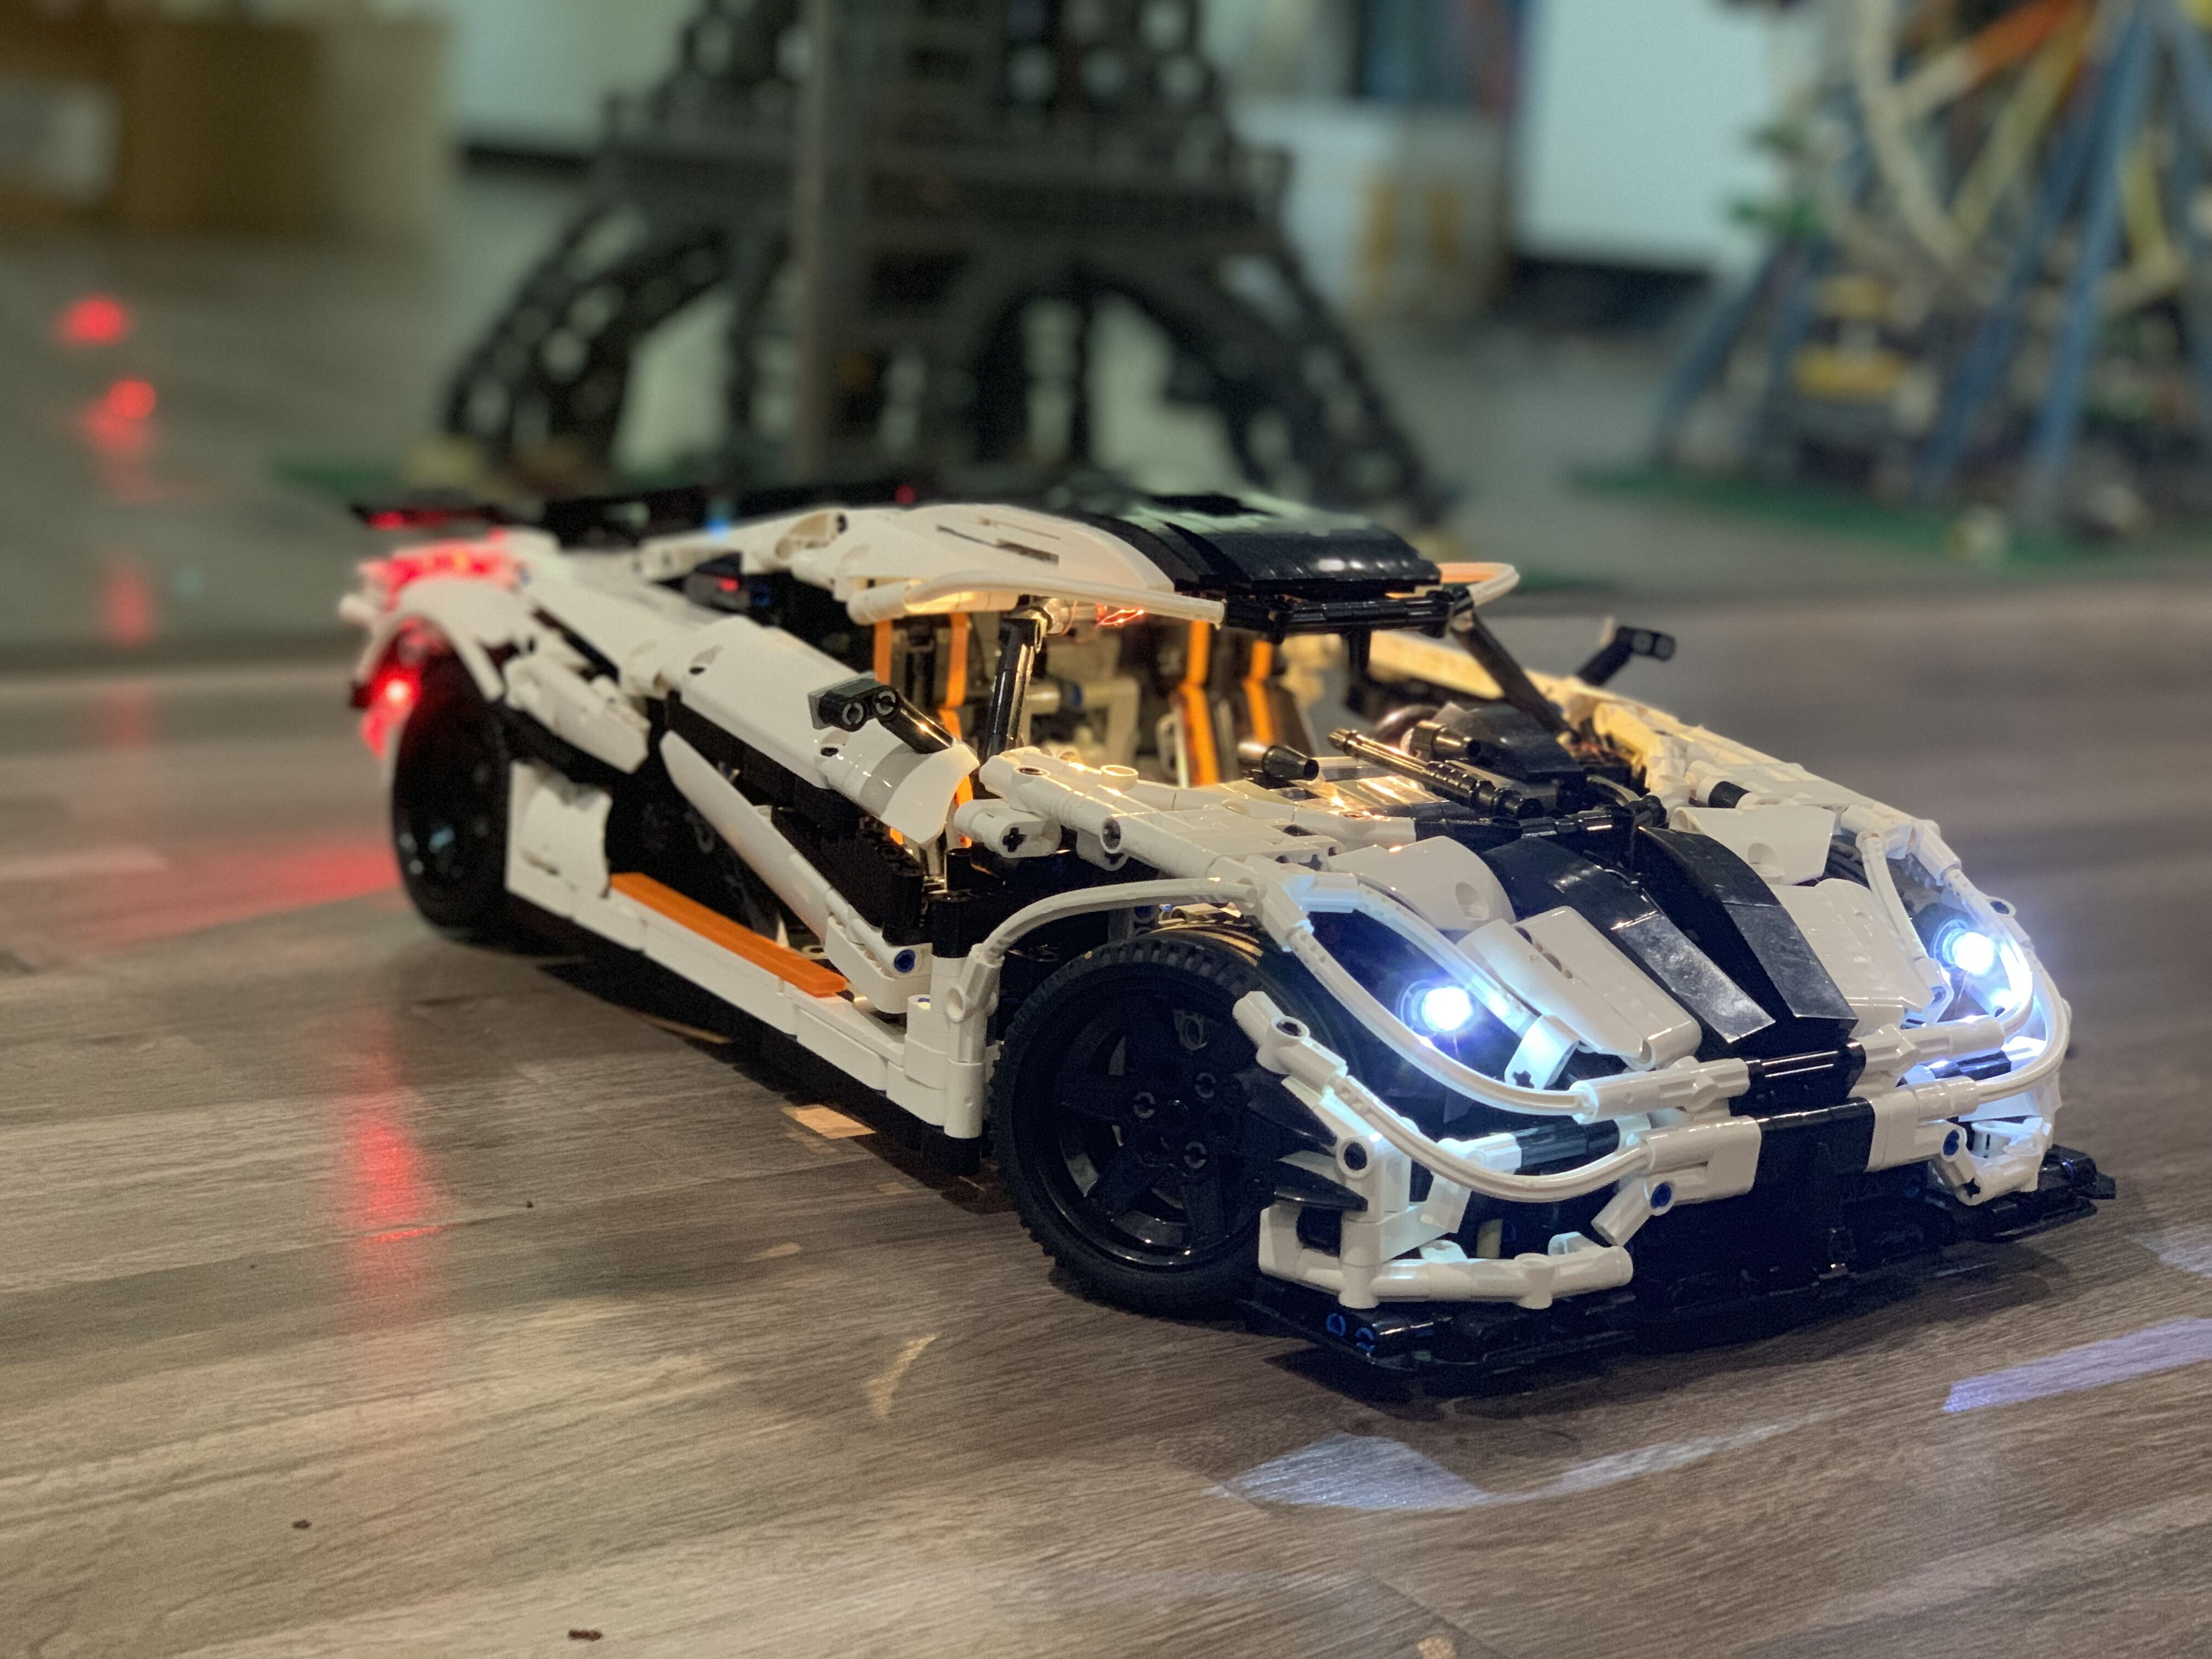 911 RSR DIY Led Light Set For Compatible IEGOset MOC - 4789 <font><b>23002</b></font> technic race Car Building Blocks Toys Gifts image